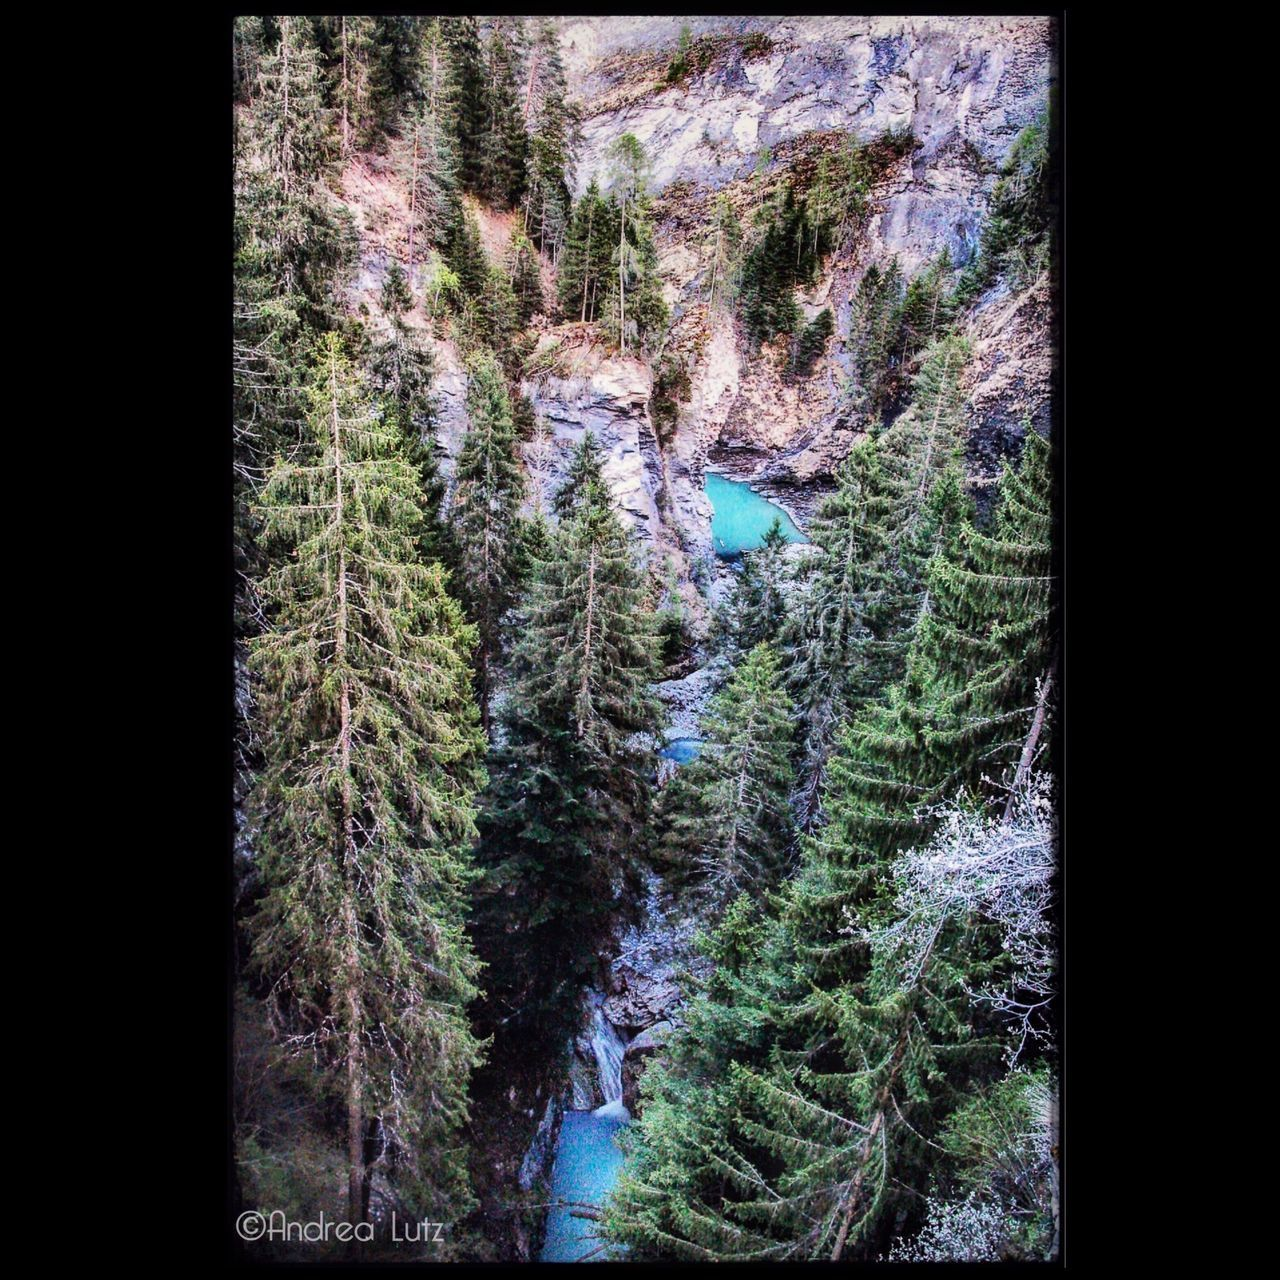 Graubünden Forest Wald Nature Stausee Wasserfall Beauty In Nature Landscape Ilovemycamera Canonphotography No People Outdoors Nature Photography Break The Mold